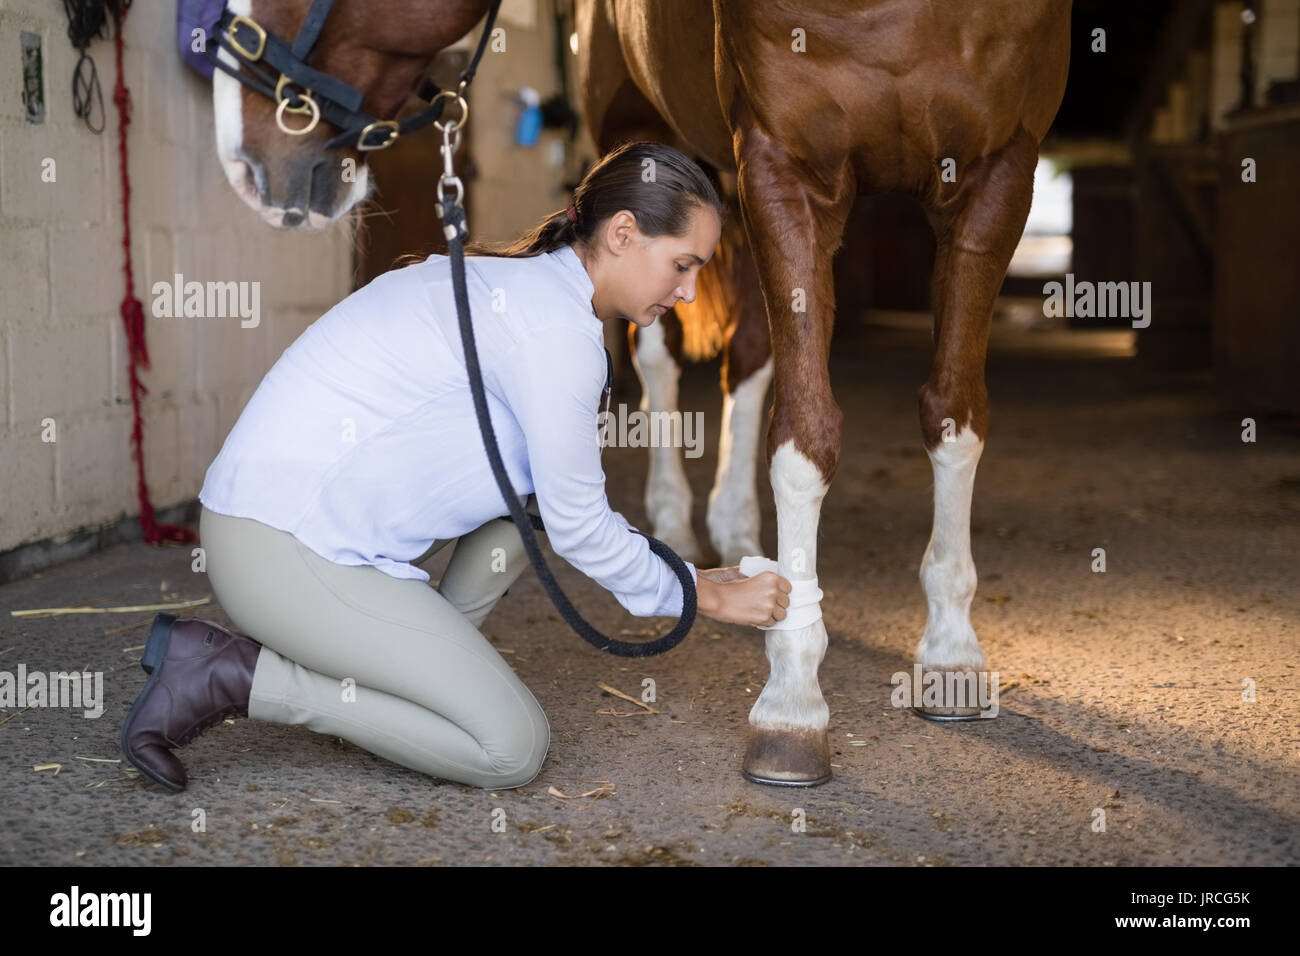 Side view of female vet examining horse in stable - Stock Image